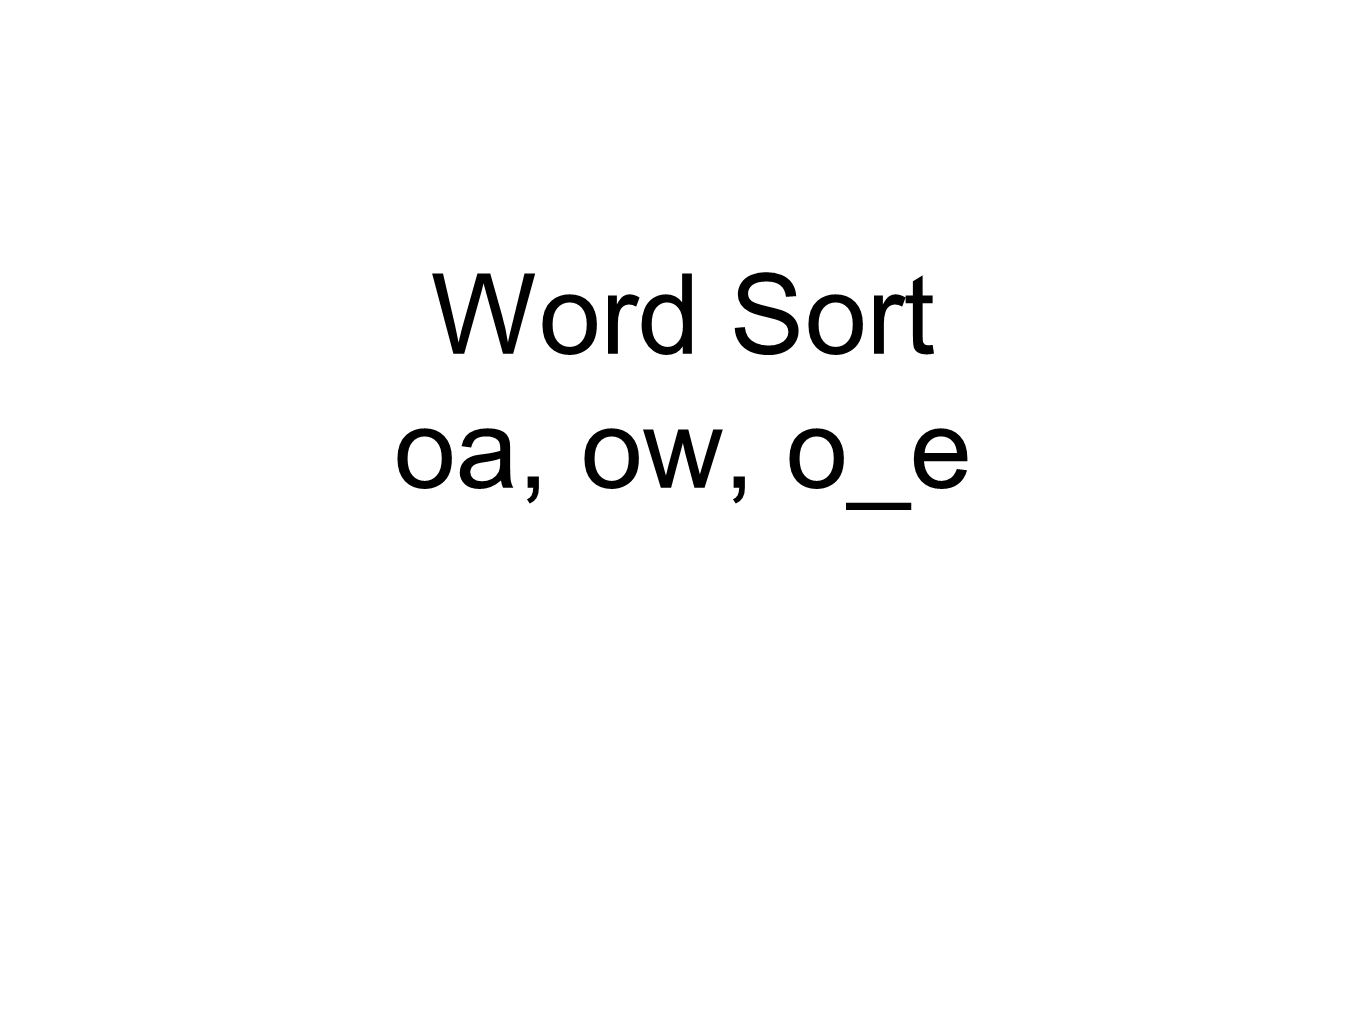 Word Sort oa, ow, o_e